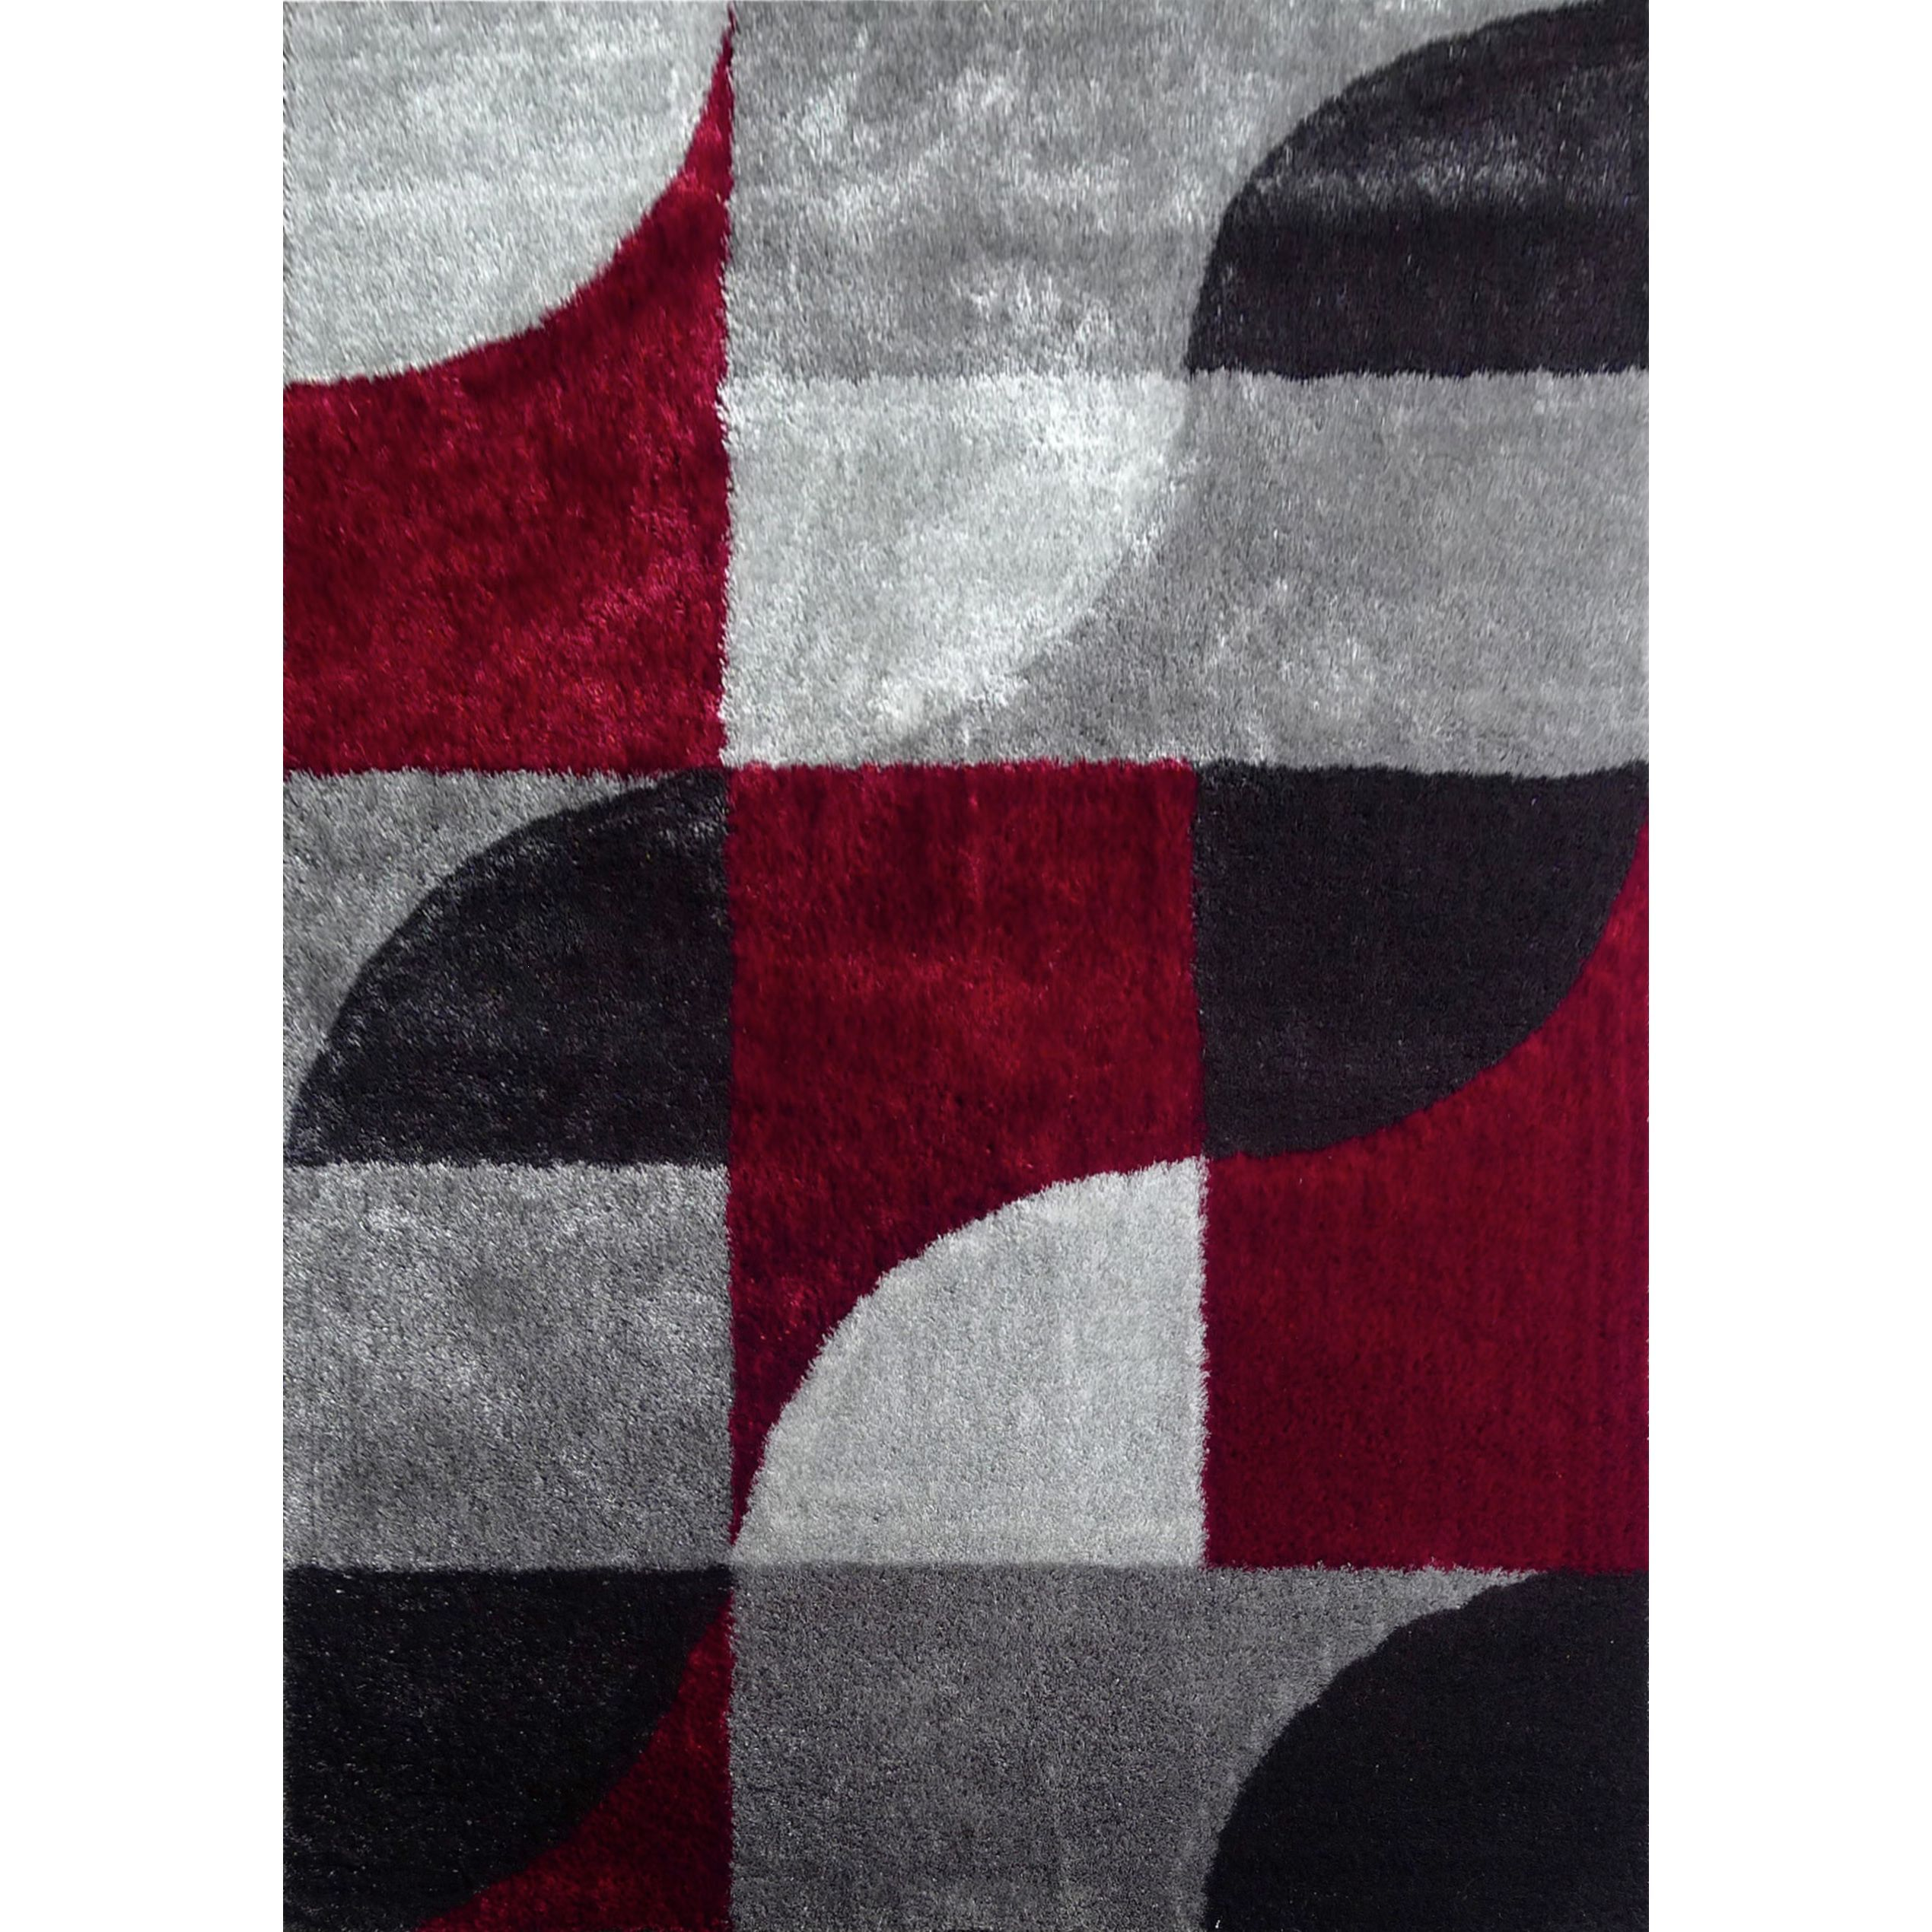 hand-tufted polyester red with light silver to dark gray shag area